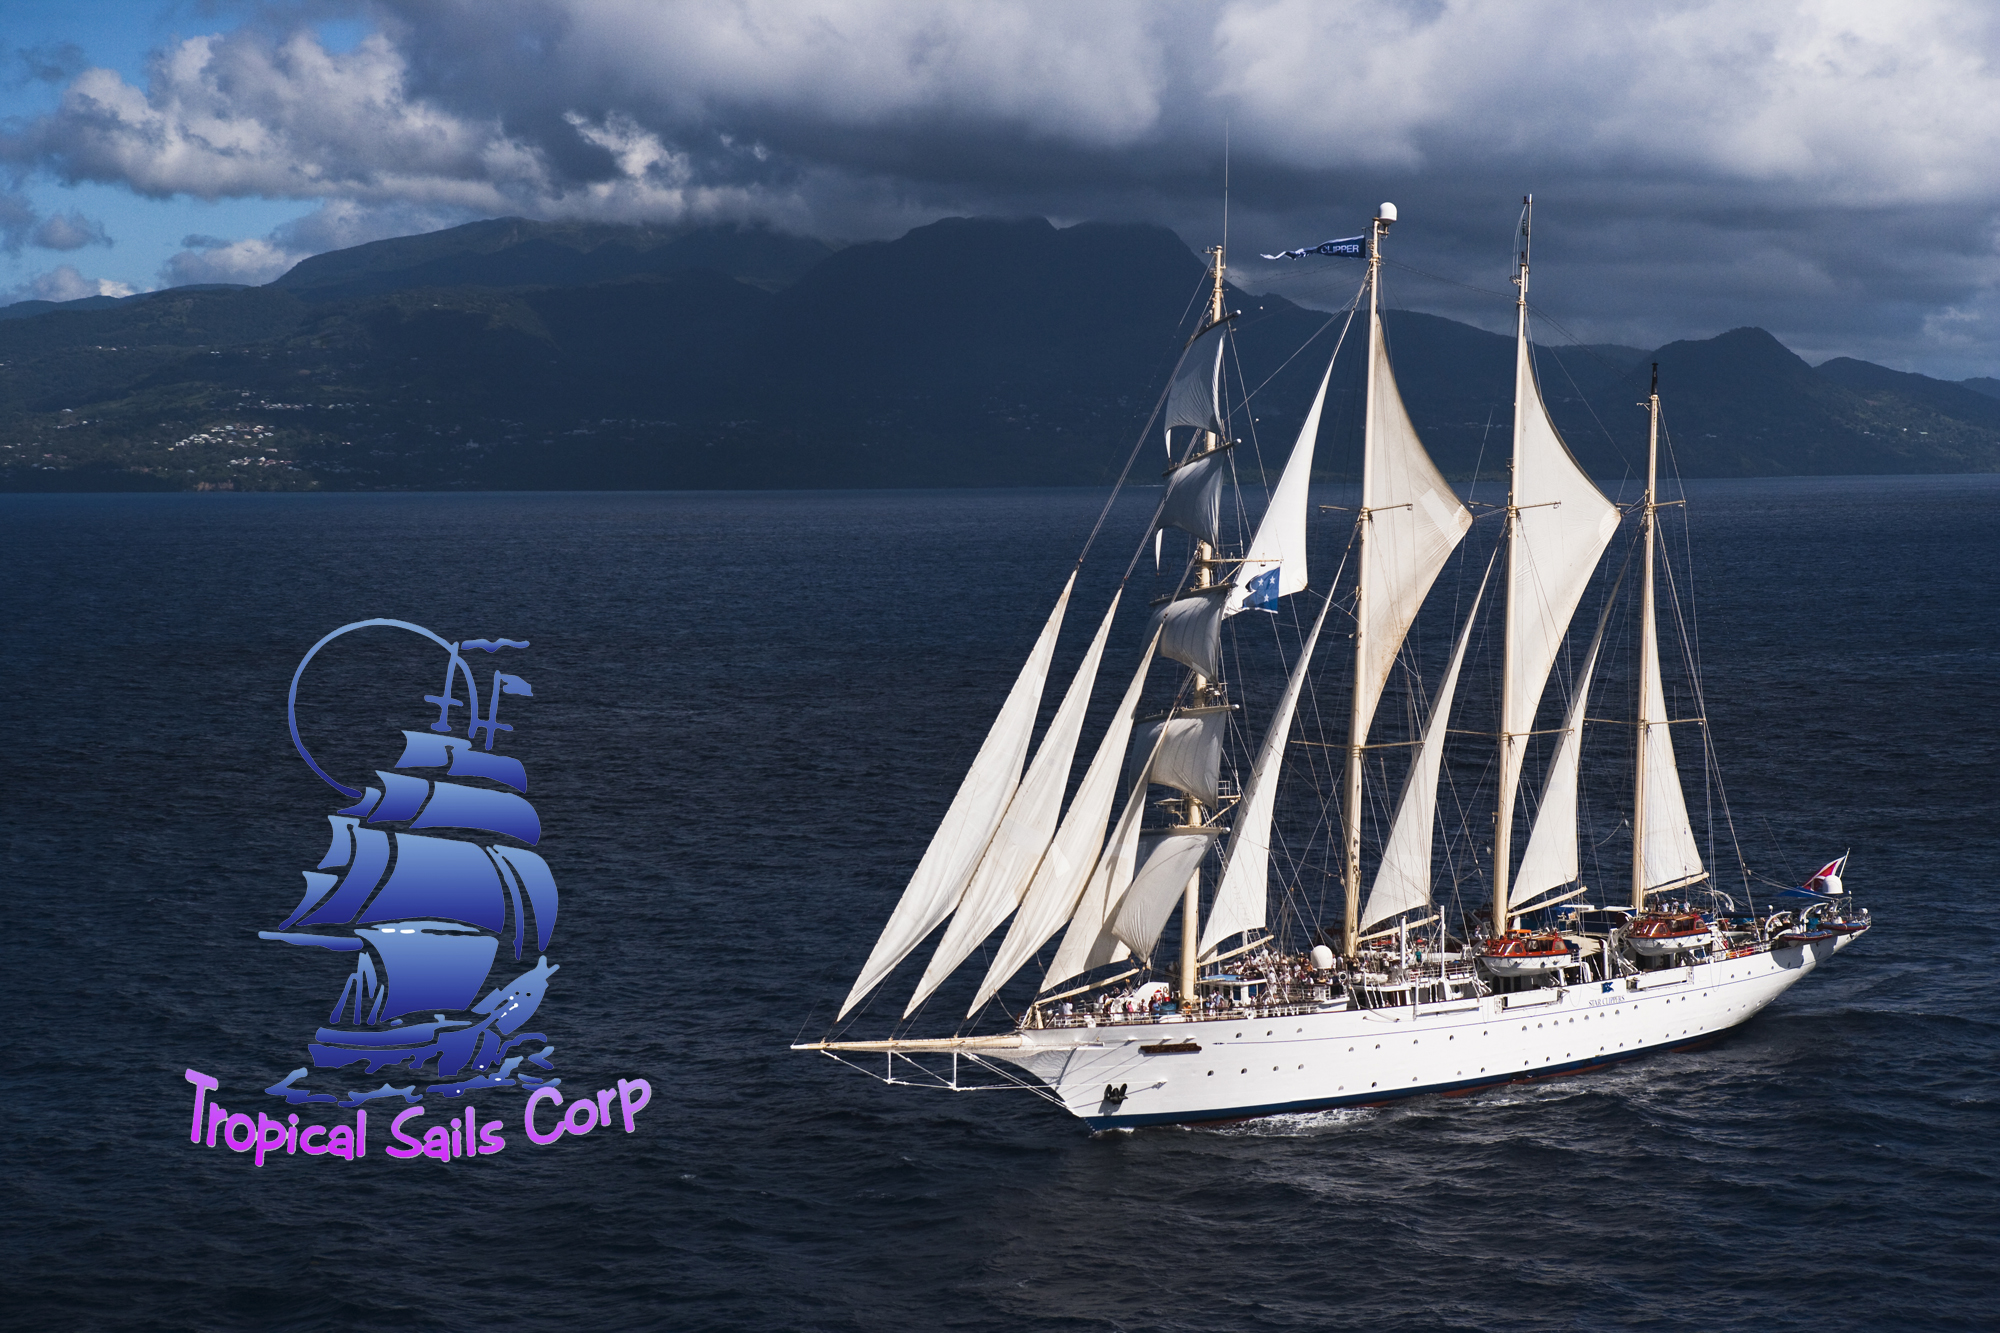 Star Clippers Caribbean Cruise Specials For - Star clipper cruises